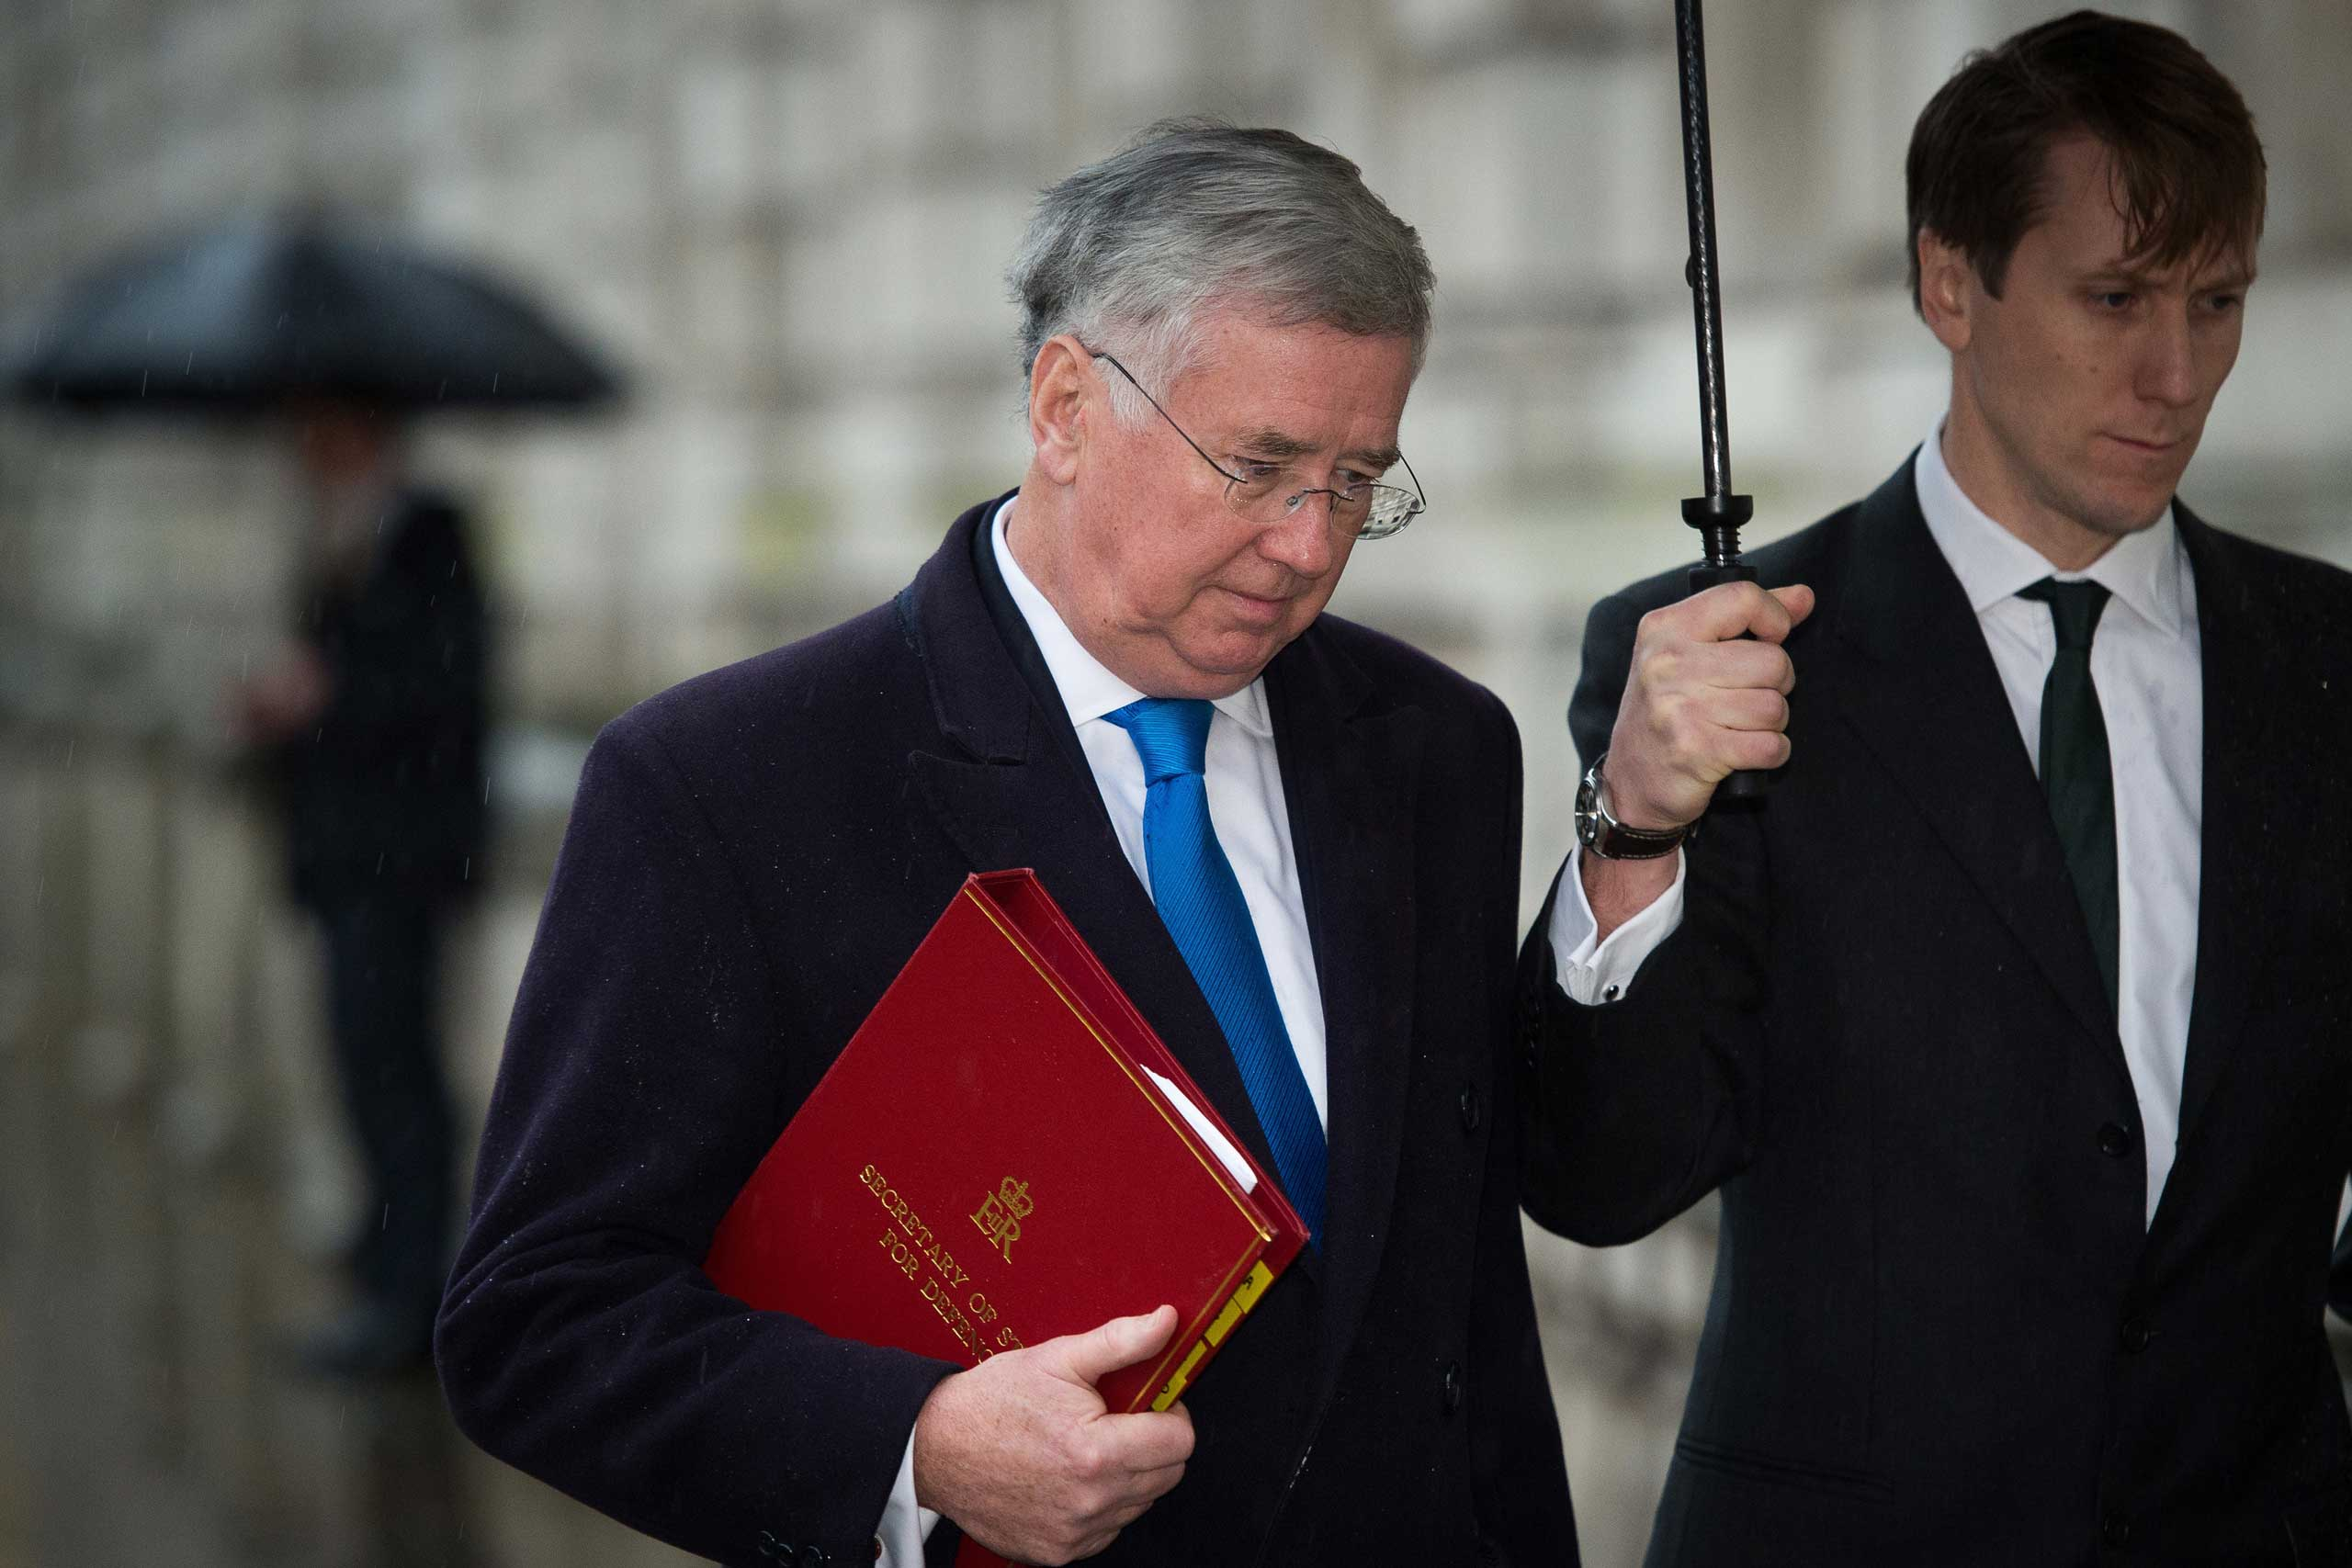 British Defence Minister Michael Fallon arrives at the Cabinet Office in central London in 2015.